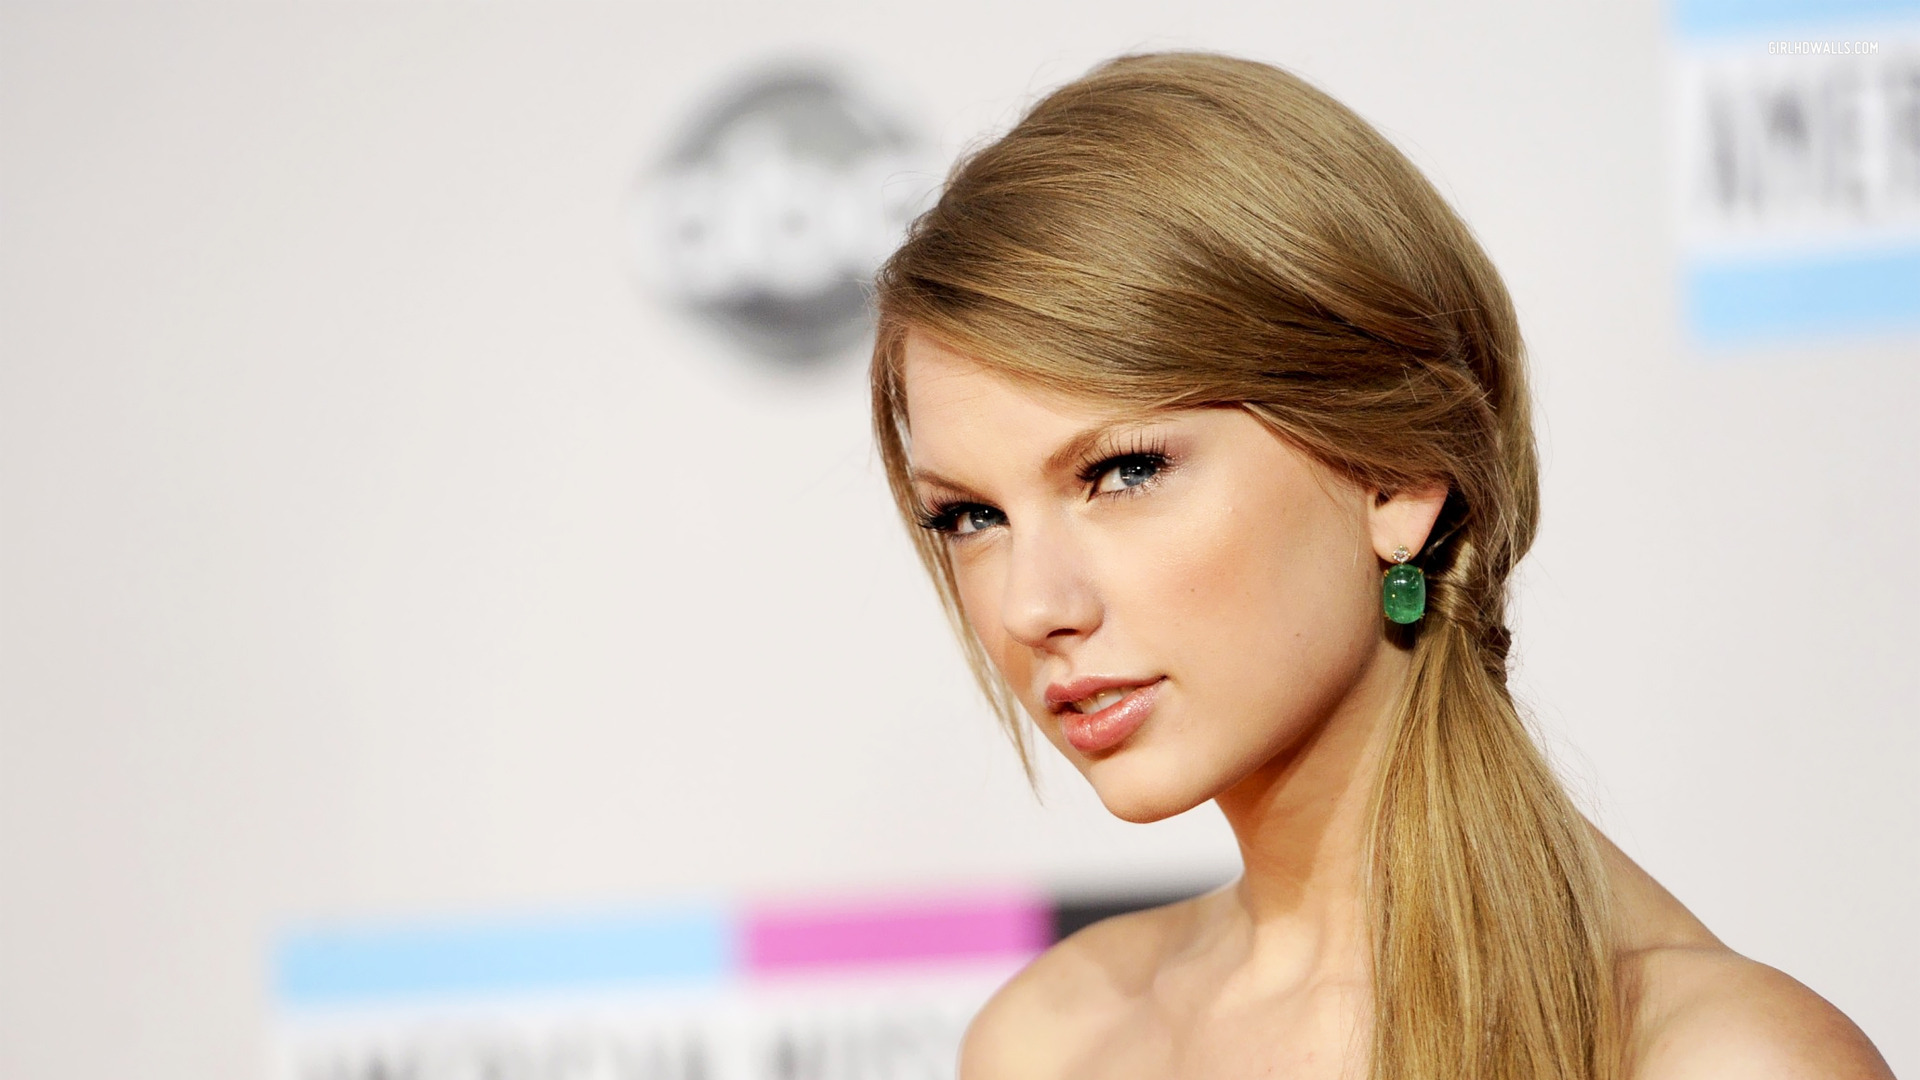 Taylor Swift Beautiful Images: 70 Hottest Taylor Swift Pictures And Wallpapers